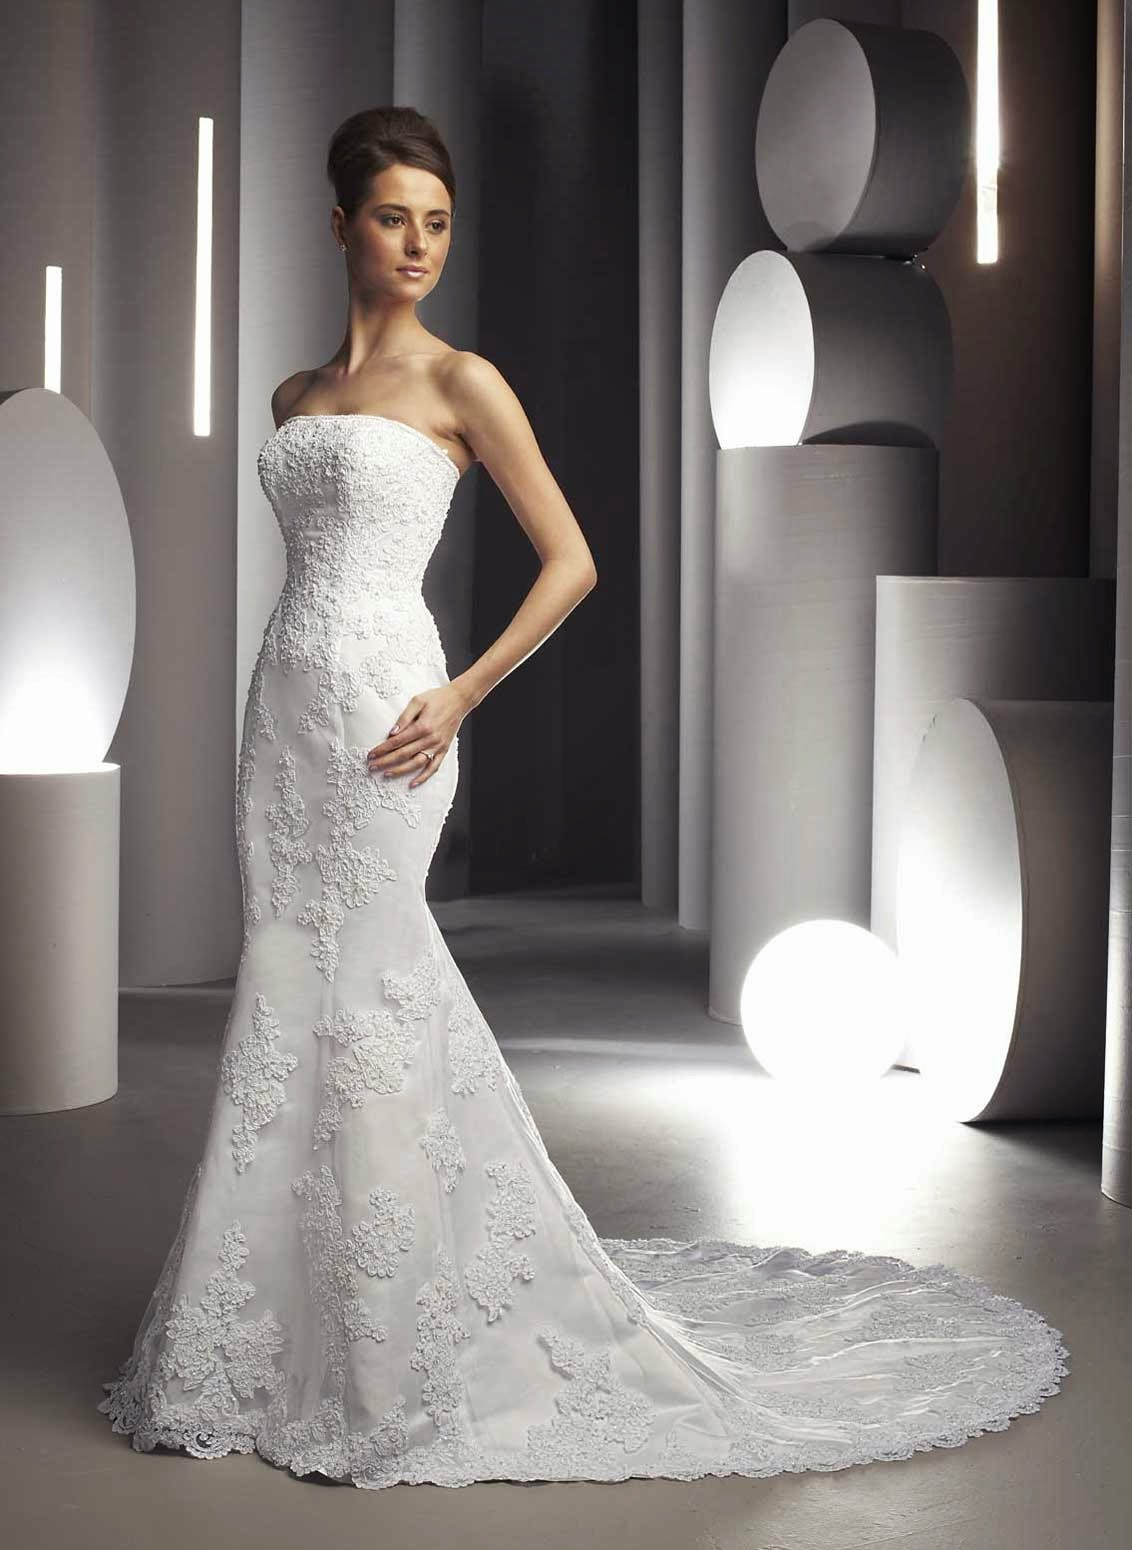 Designer Mermaid Style Wedding Dresses Photos HD Concepts Ideas